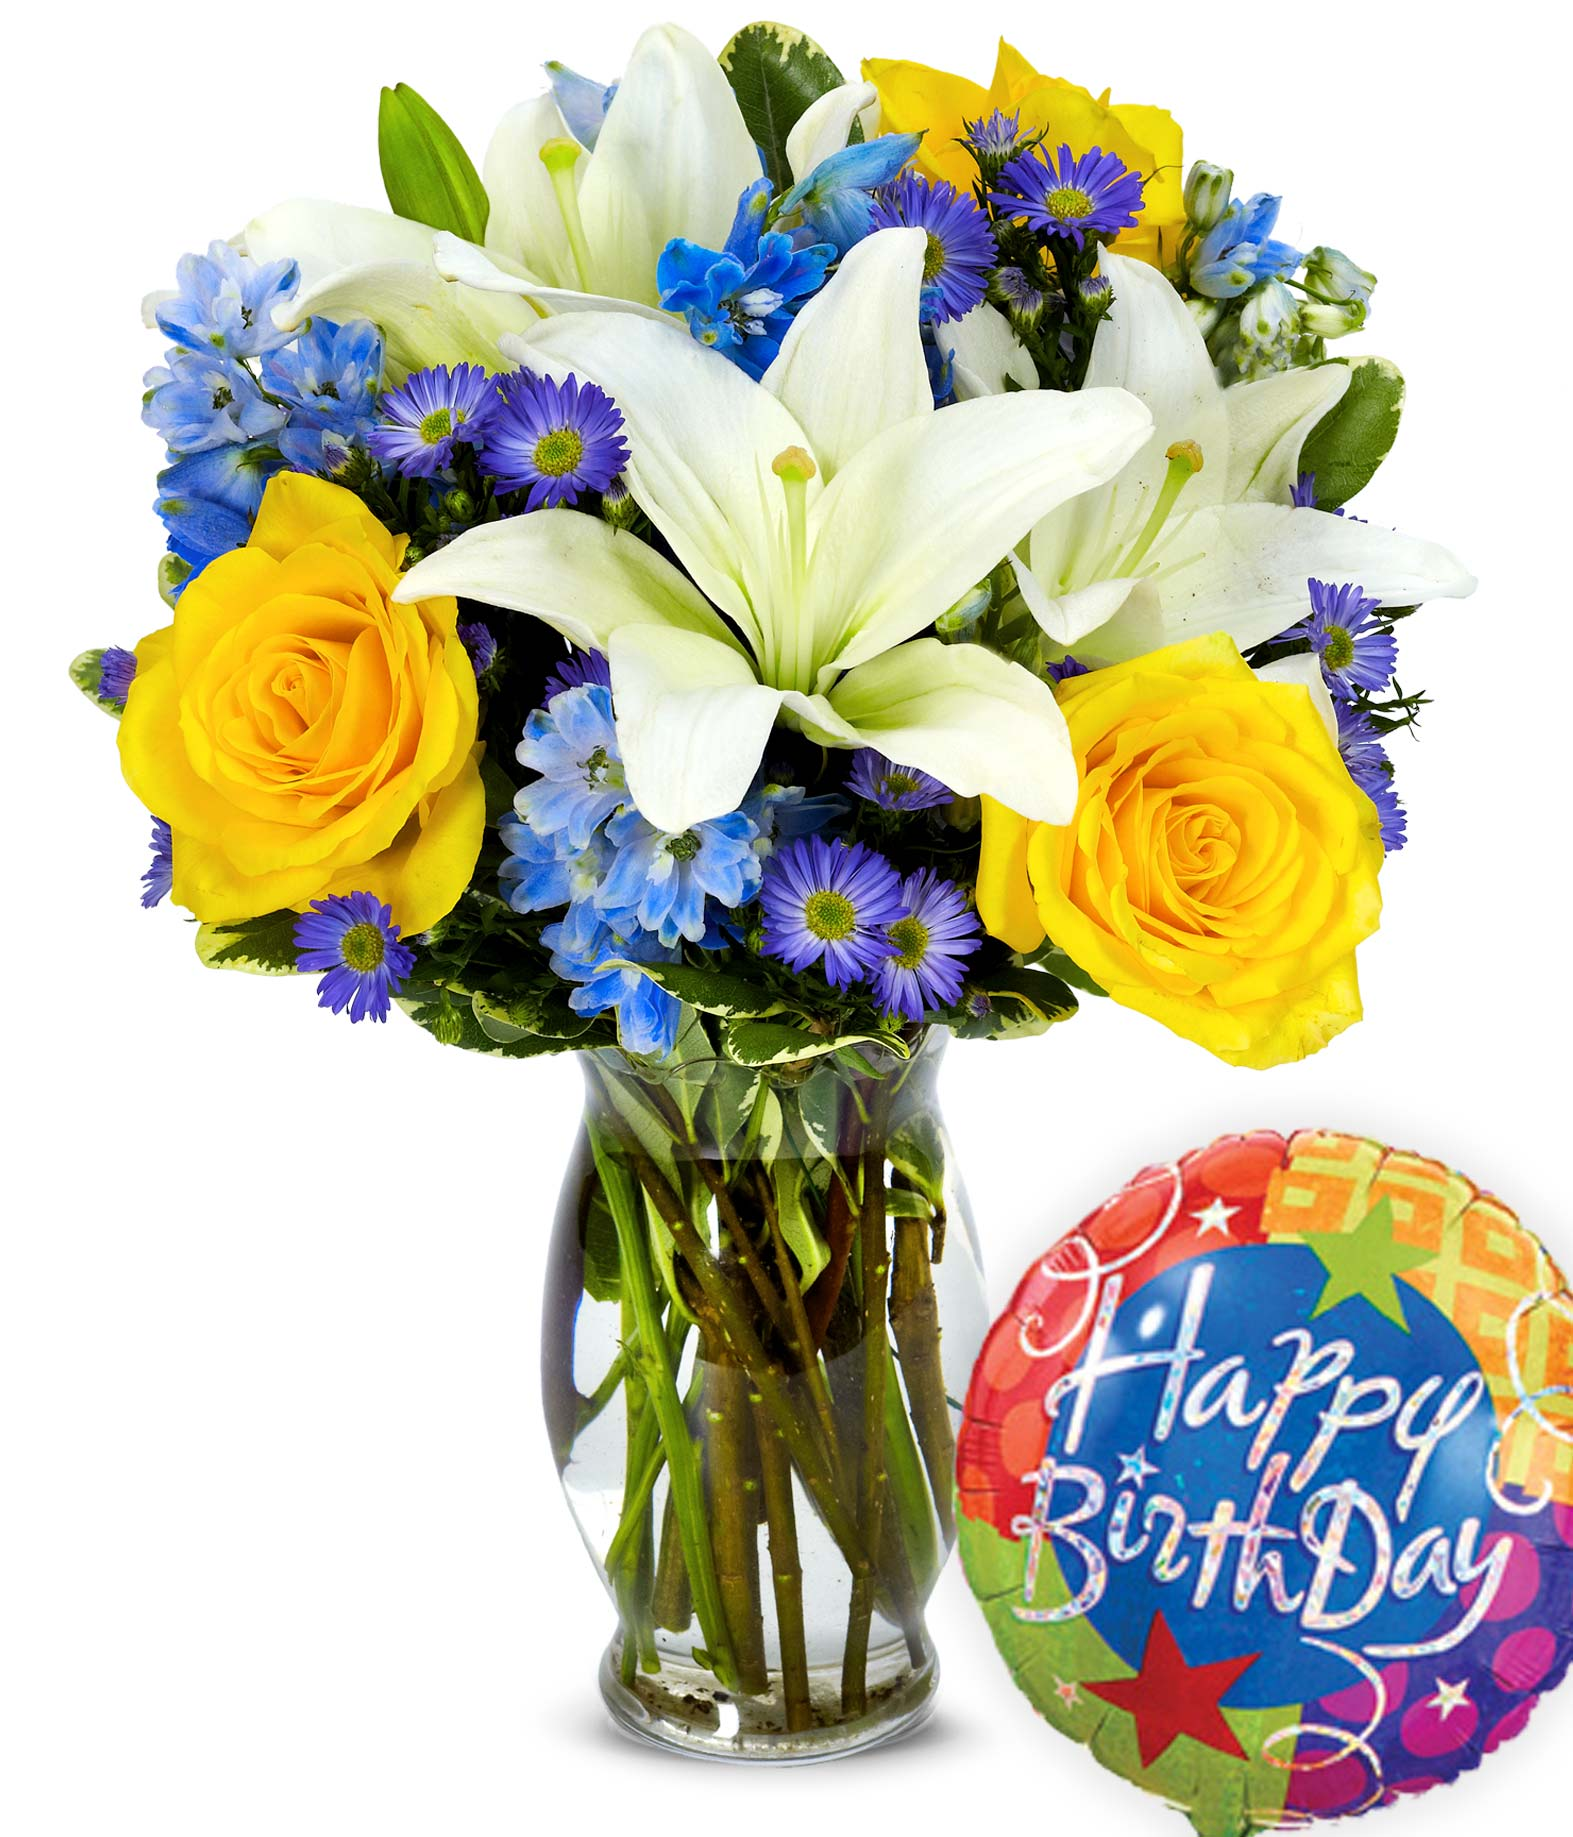 Rose and Lily Bouquet with Birthday Balloon